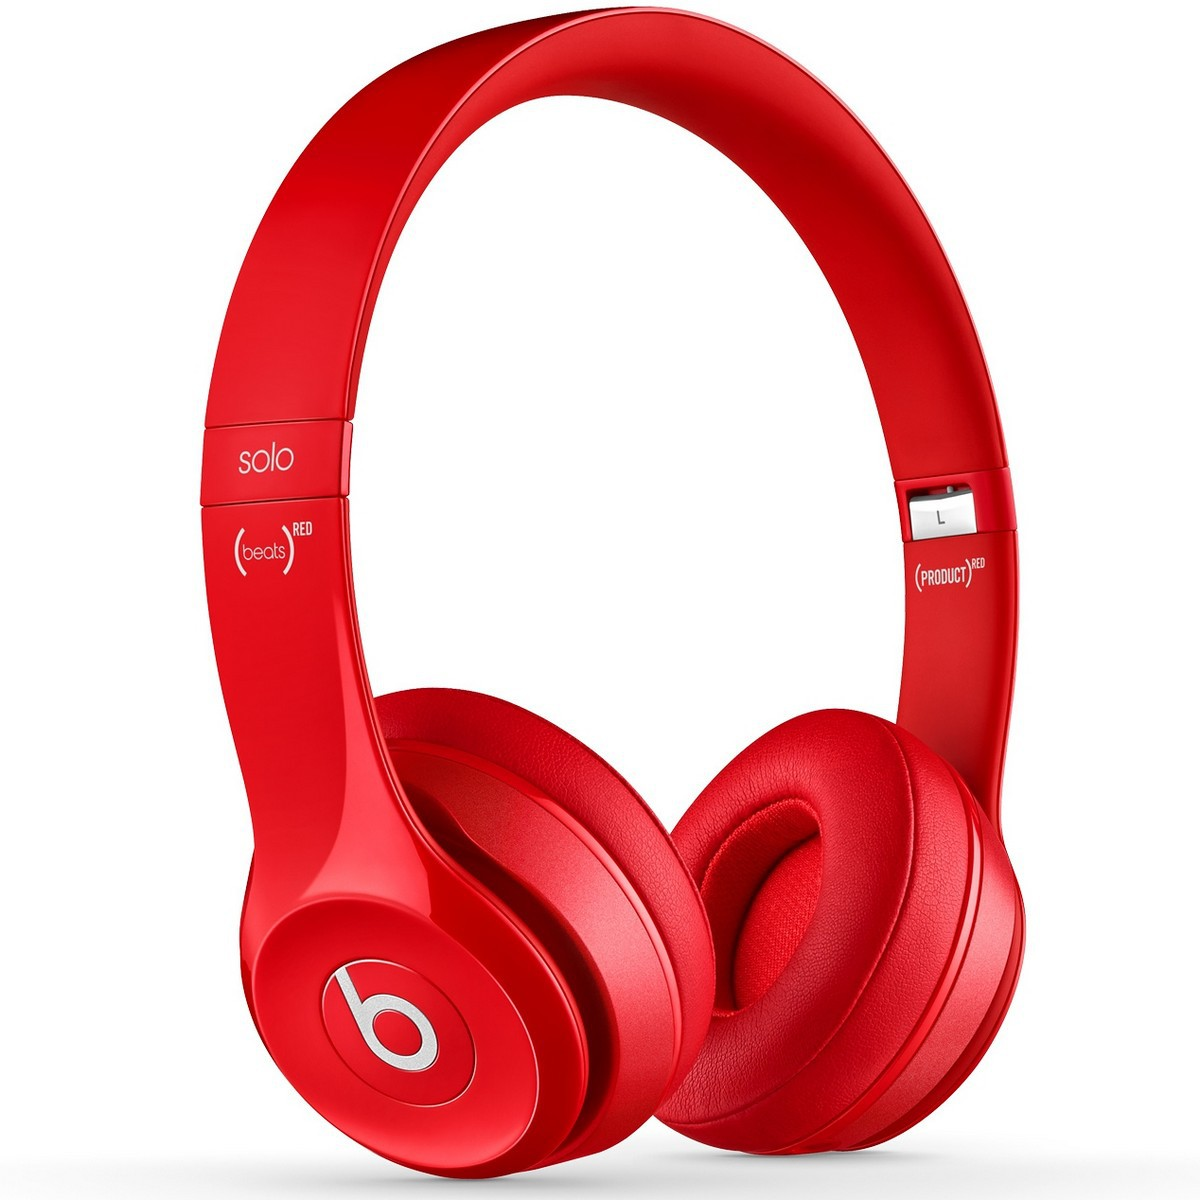 Beats Solo 2 Red | On Ear Headphone